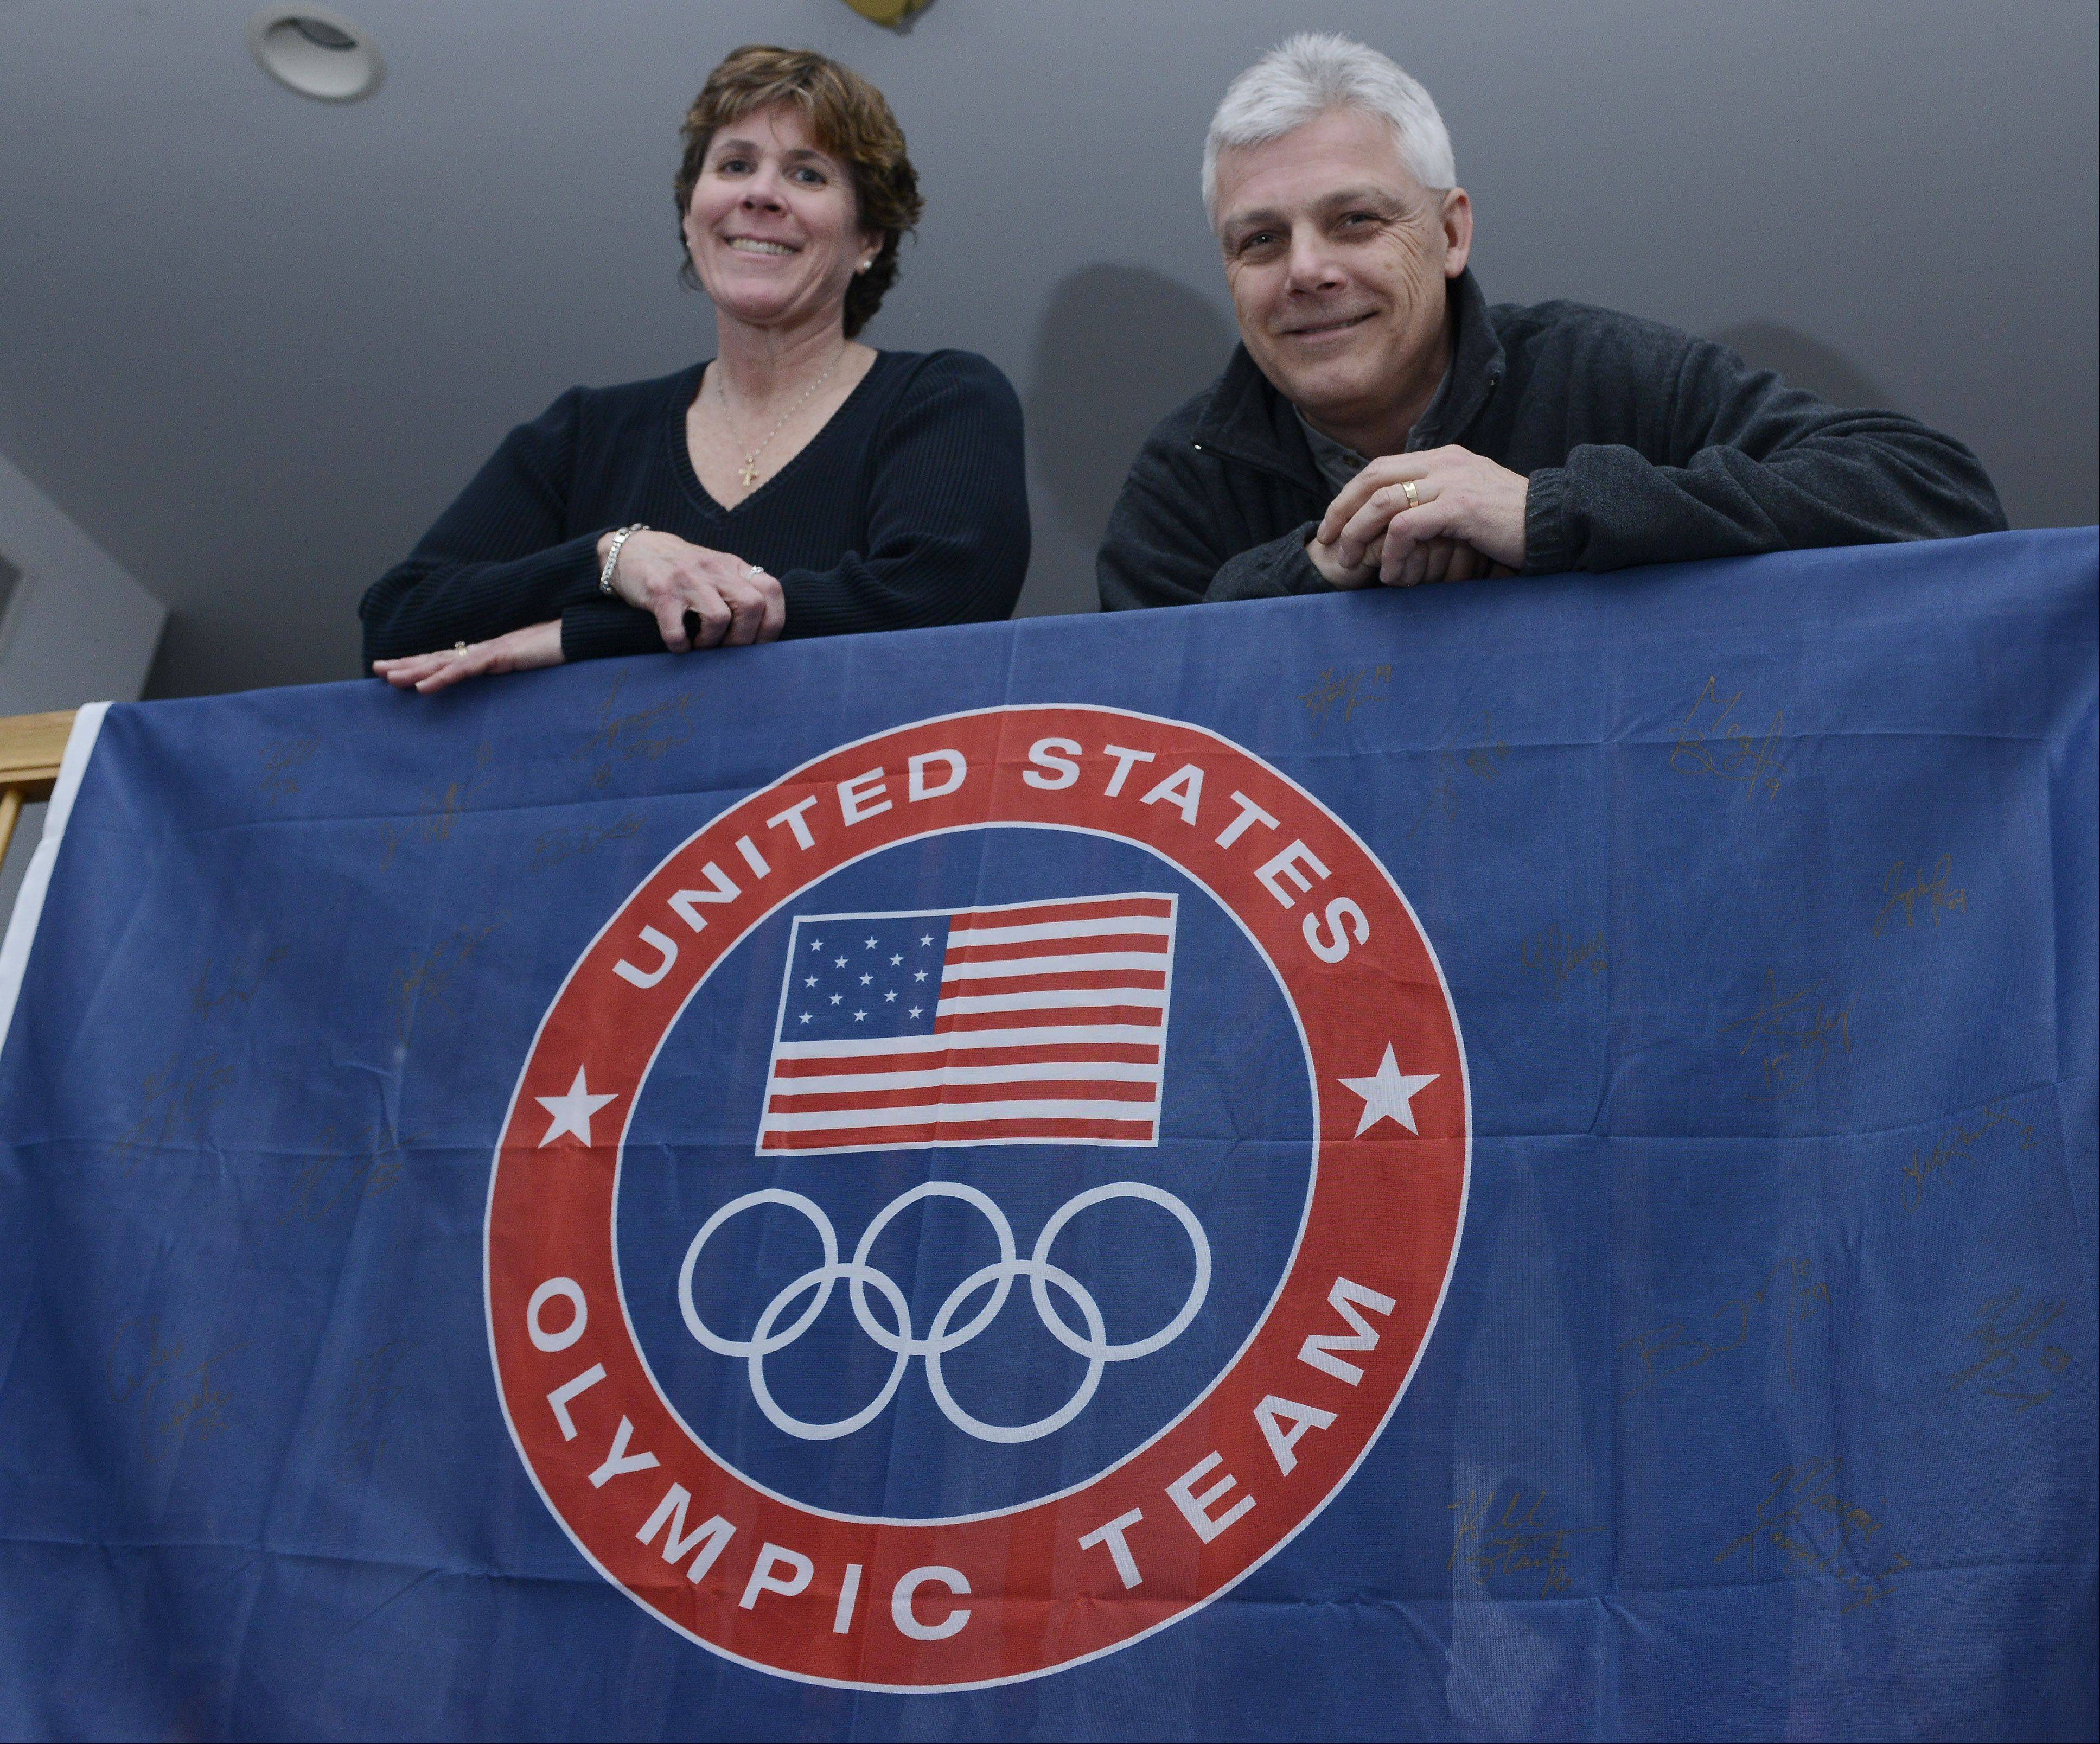 Patti and Tom Bozek of Buffalo Grove, parents of Olympic hockey player Megan Bozek, will be in Sochi for the opening ceremony of the Olympic Games and attend all of Megan's games.